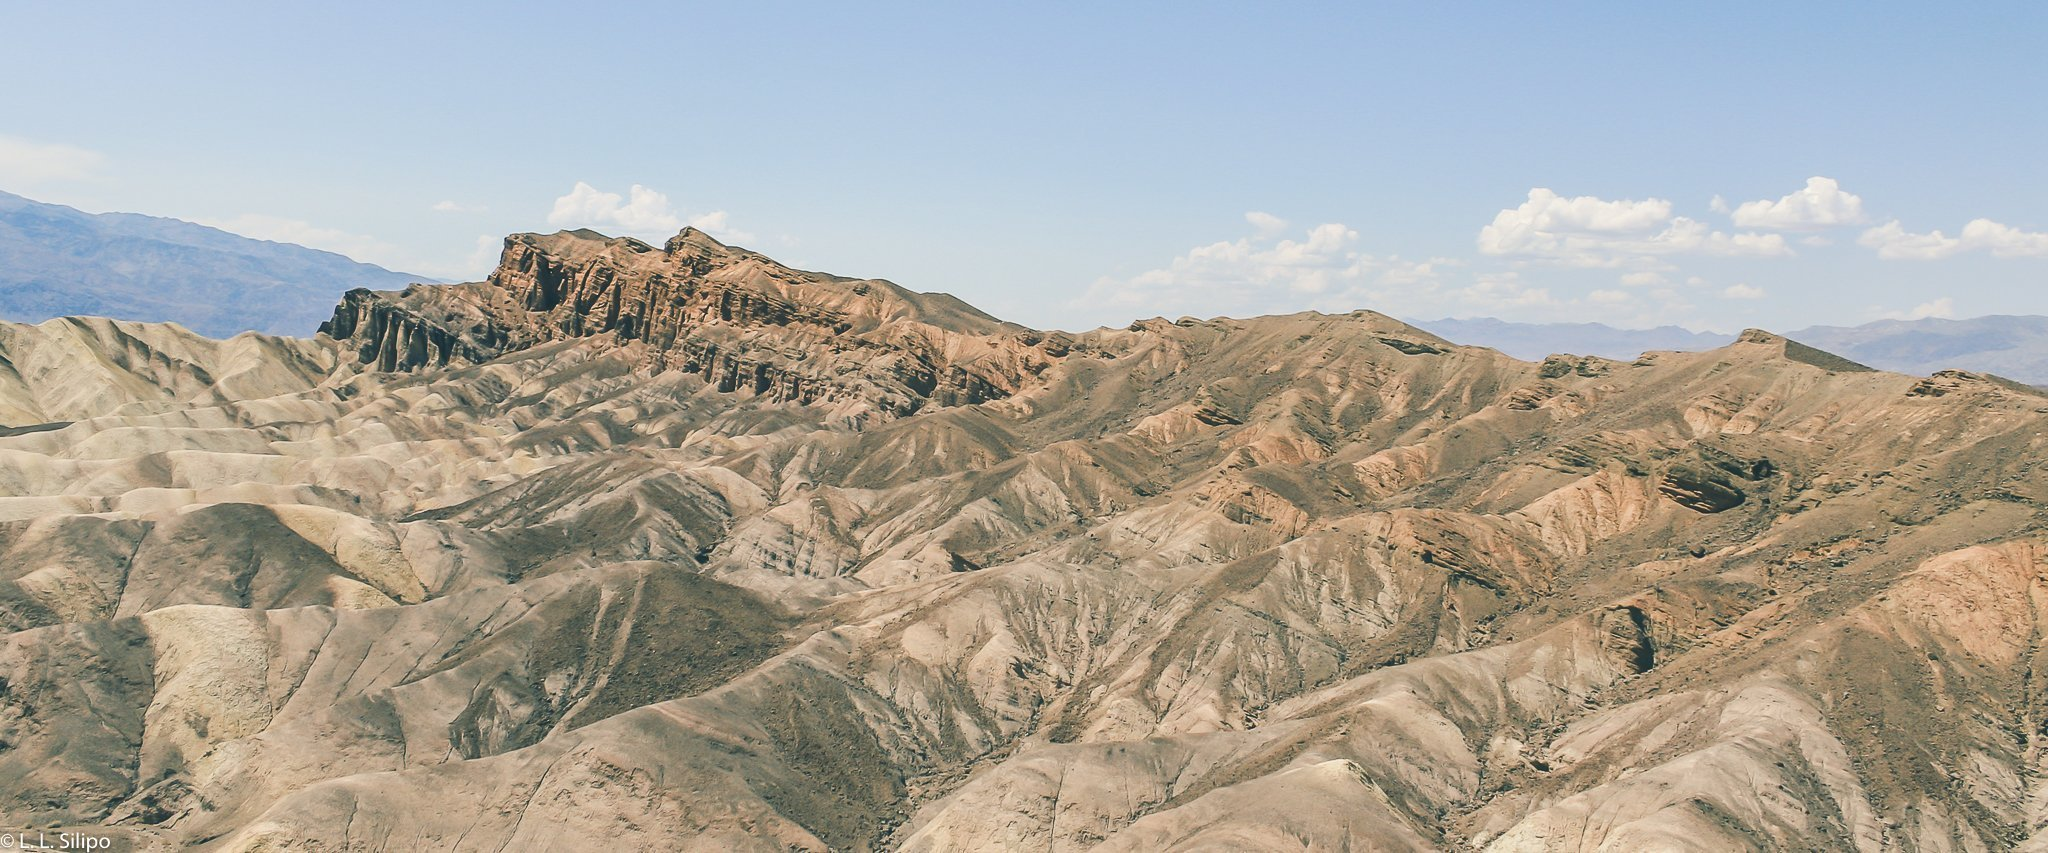 California, Death, america, arid, arizona, canyon, death valley national park, desert, desolate, dry, erosion, geology, landscape, national, national park, outdoors, panoramic, park, rock, sand, scenic, travel, usa, valley, zabriskie